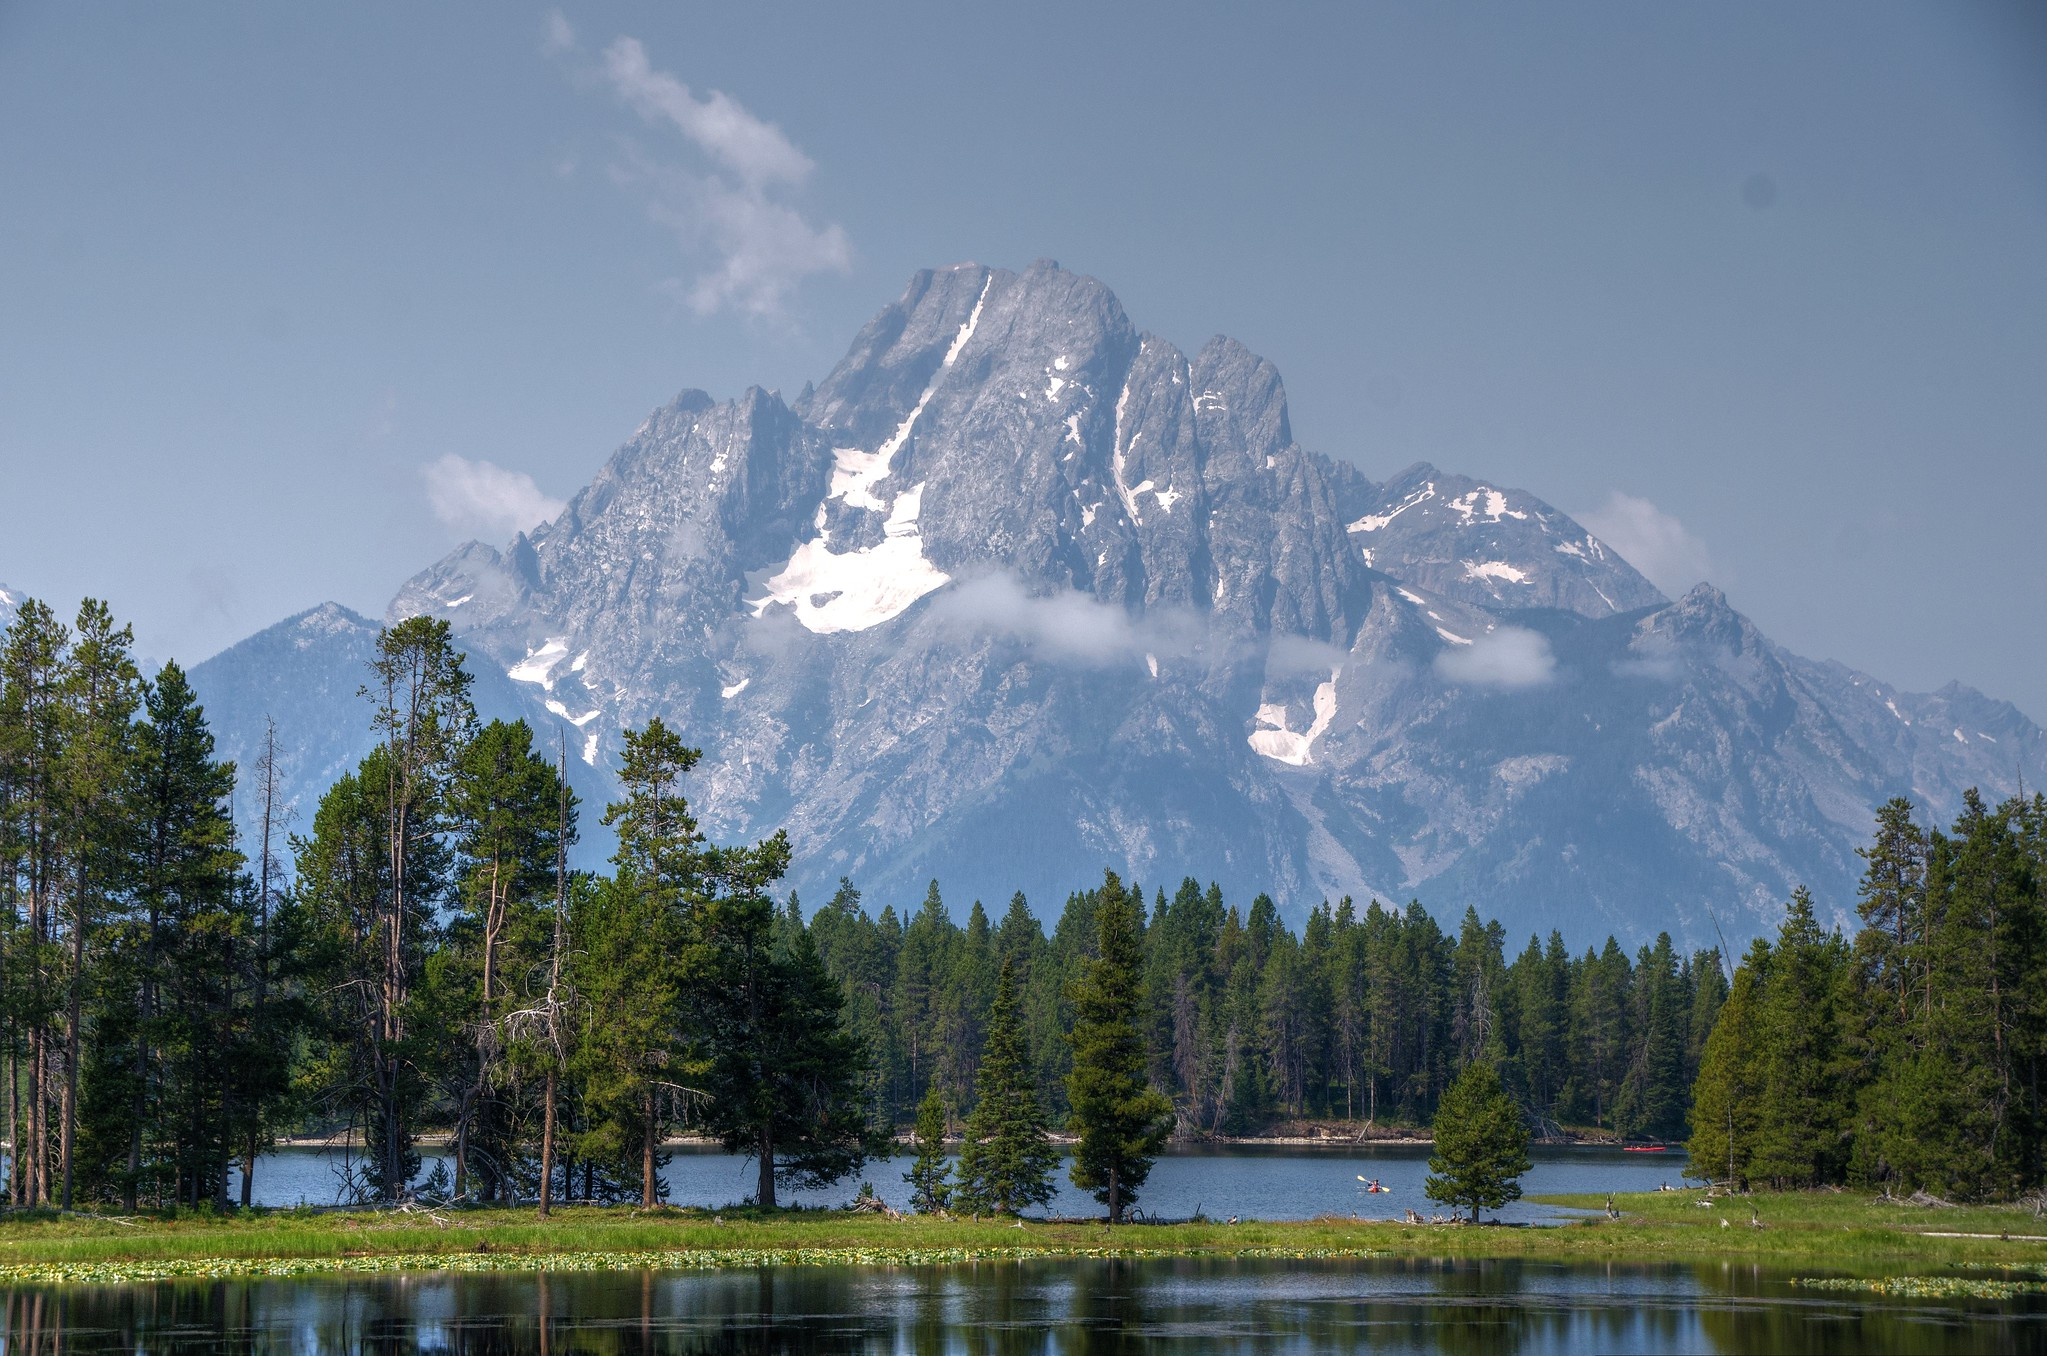 A view of Mount Moran with trees surrounding Heron Pond in front taken from the Hermitage Point Trail